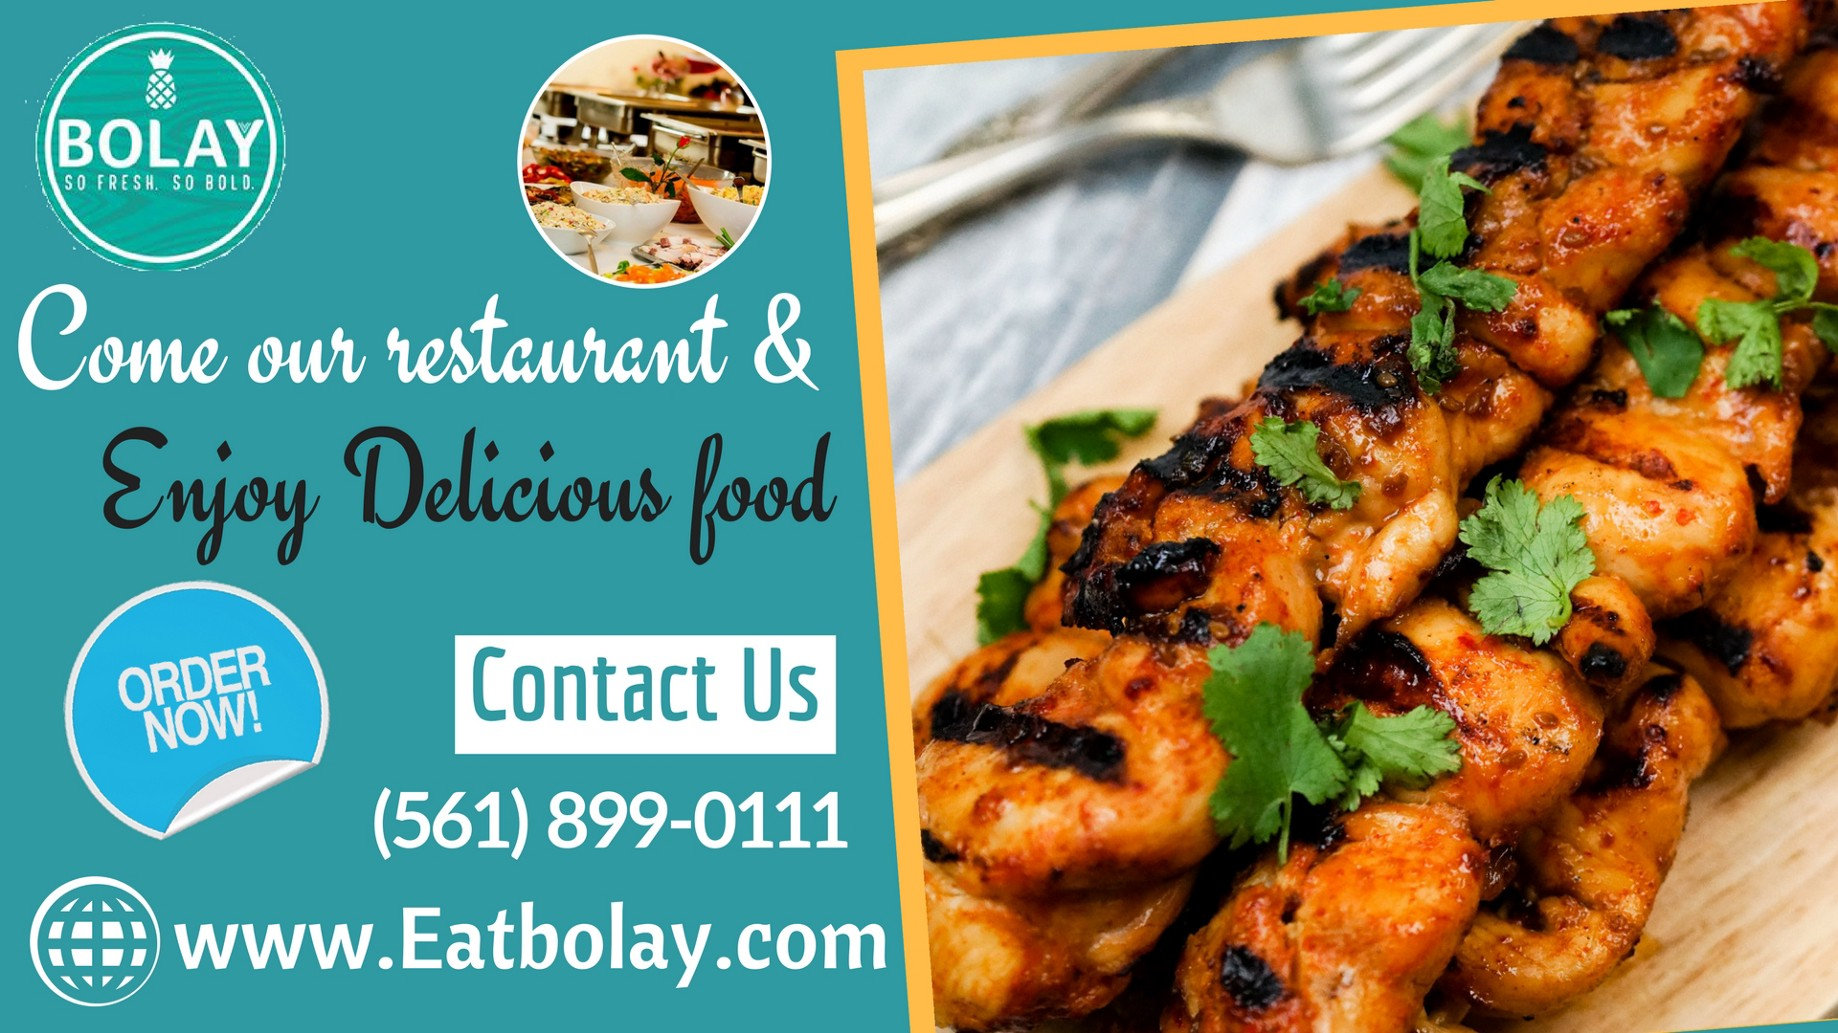 Diet Healthy Food Recipes At Bolay By Bolay Medium